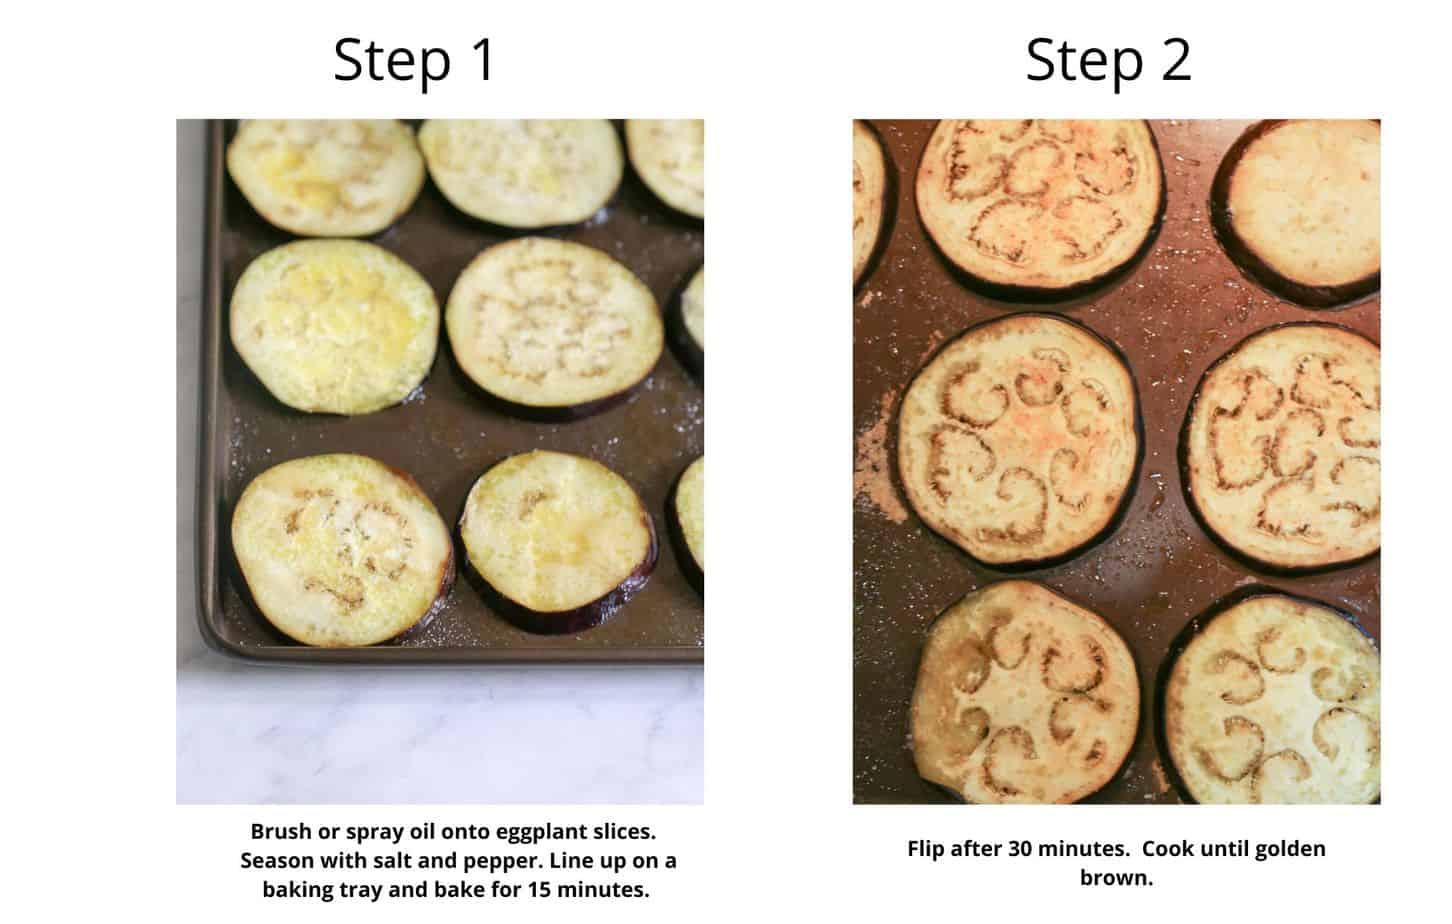 Step by step to make roasted eggplant for baked eggplant parmesan